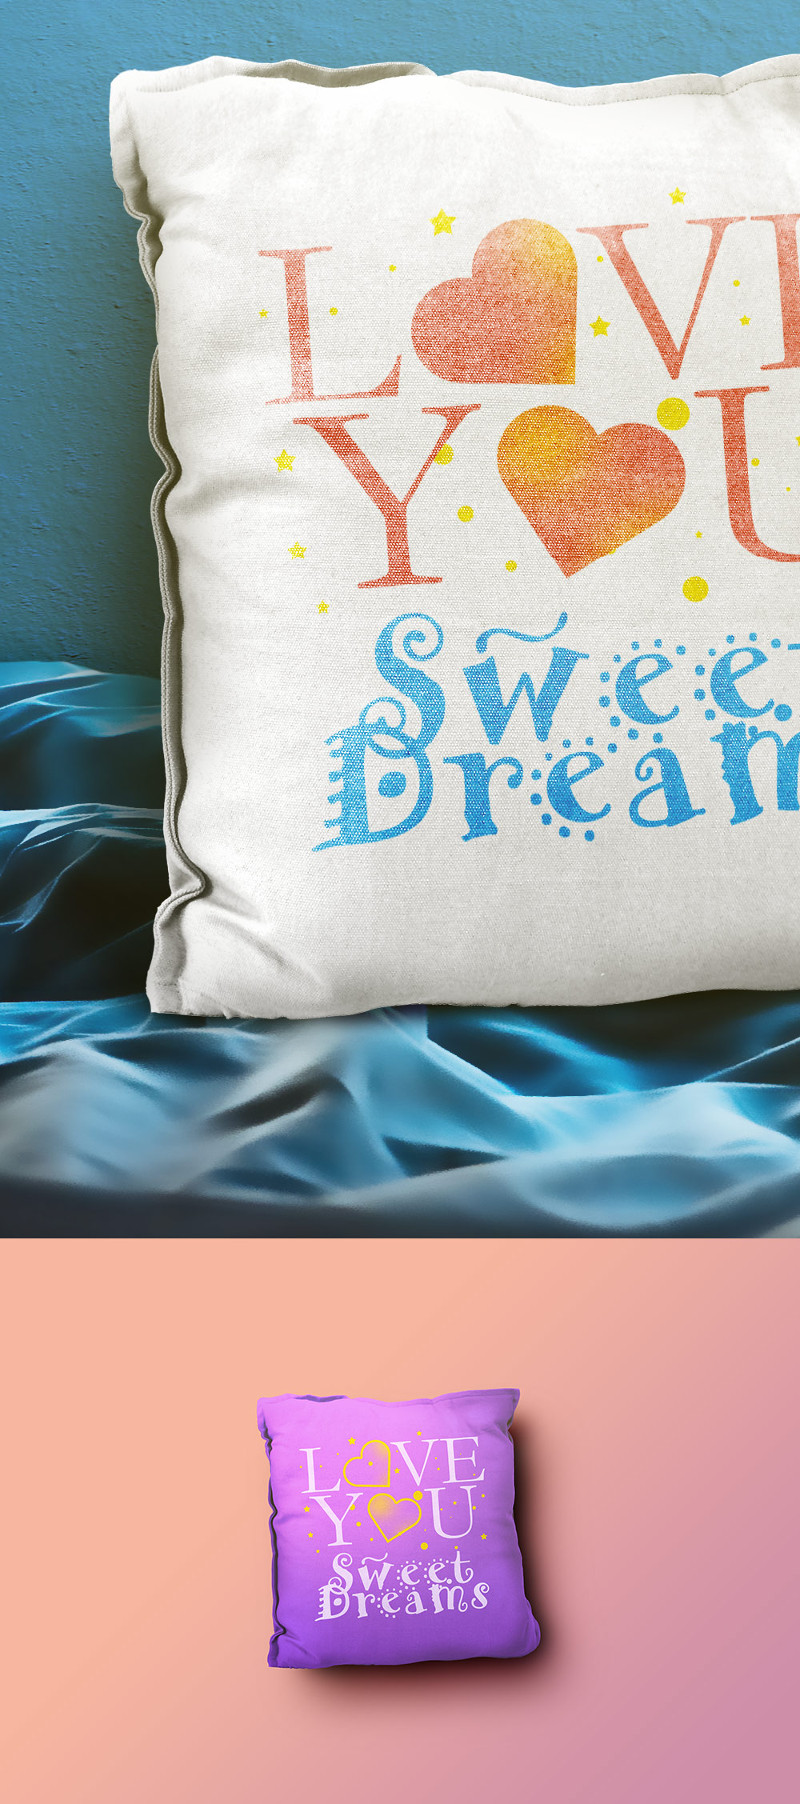 Pillow Mockup PSD Templates by GraphicsFuel